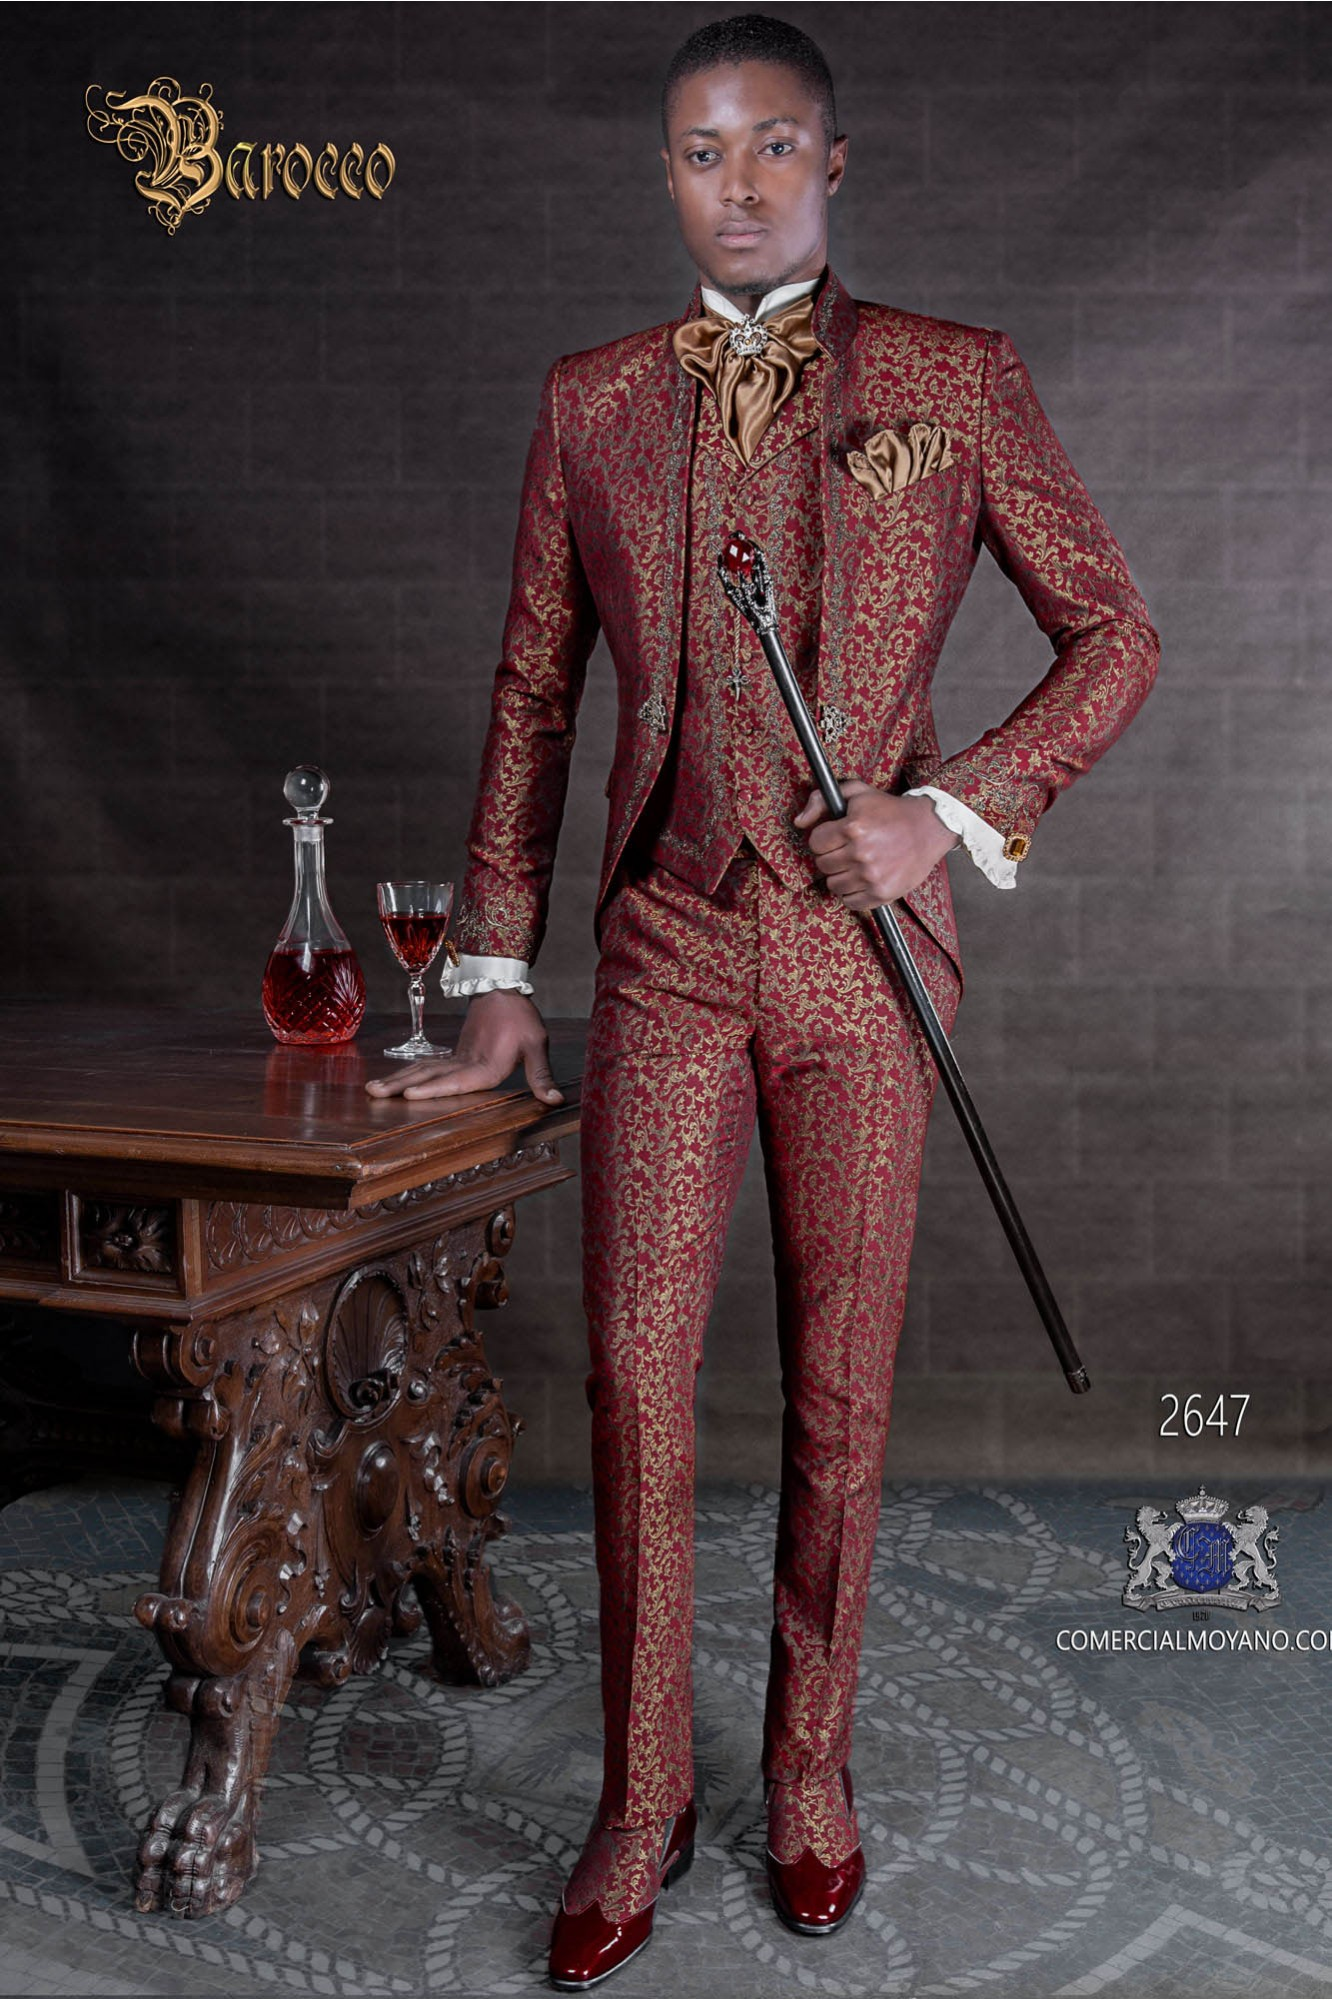 Baroque groom suit, vintage mao collar frock coat in red and gold jacquard fabric with silver embroidery